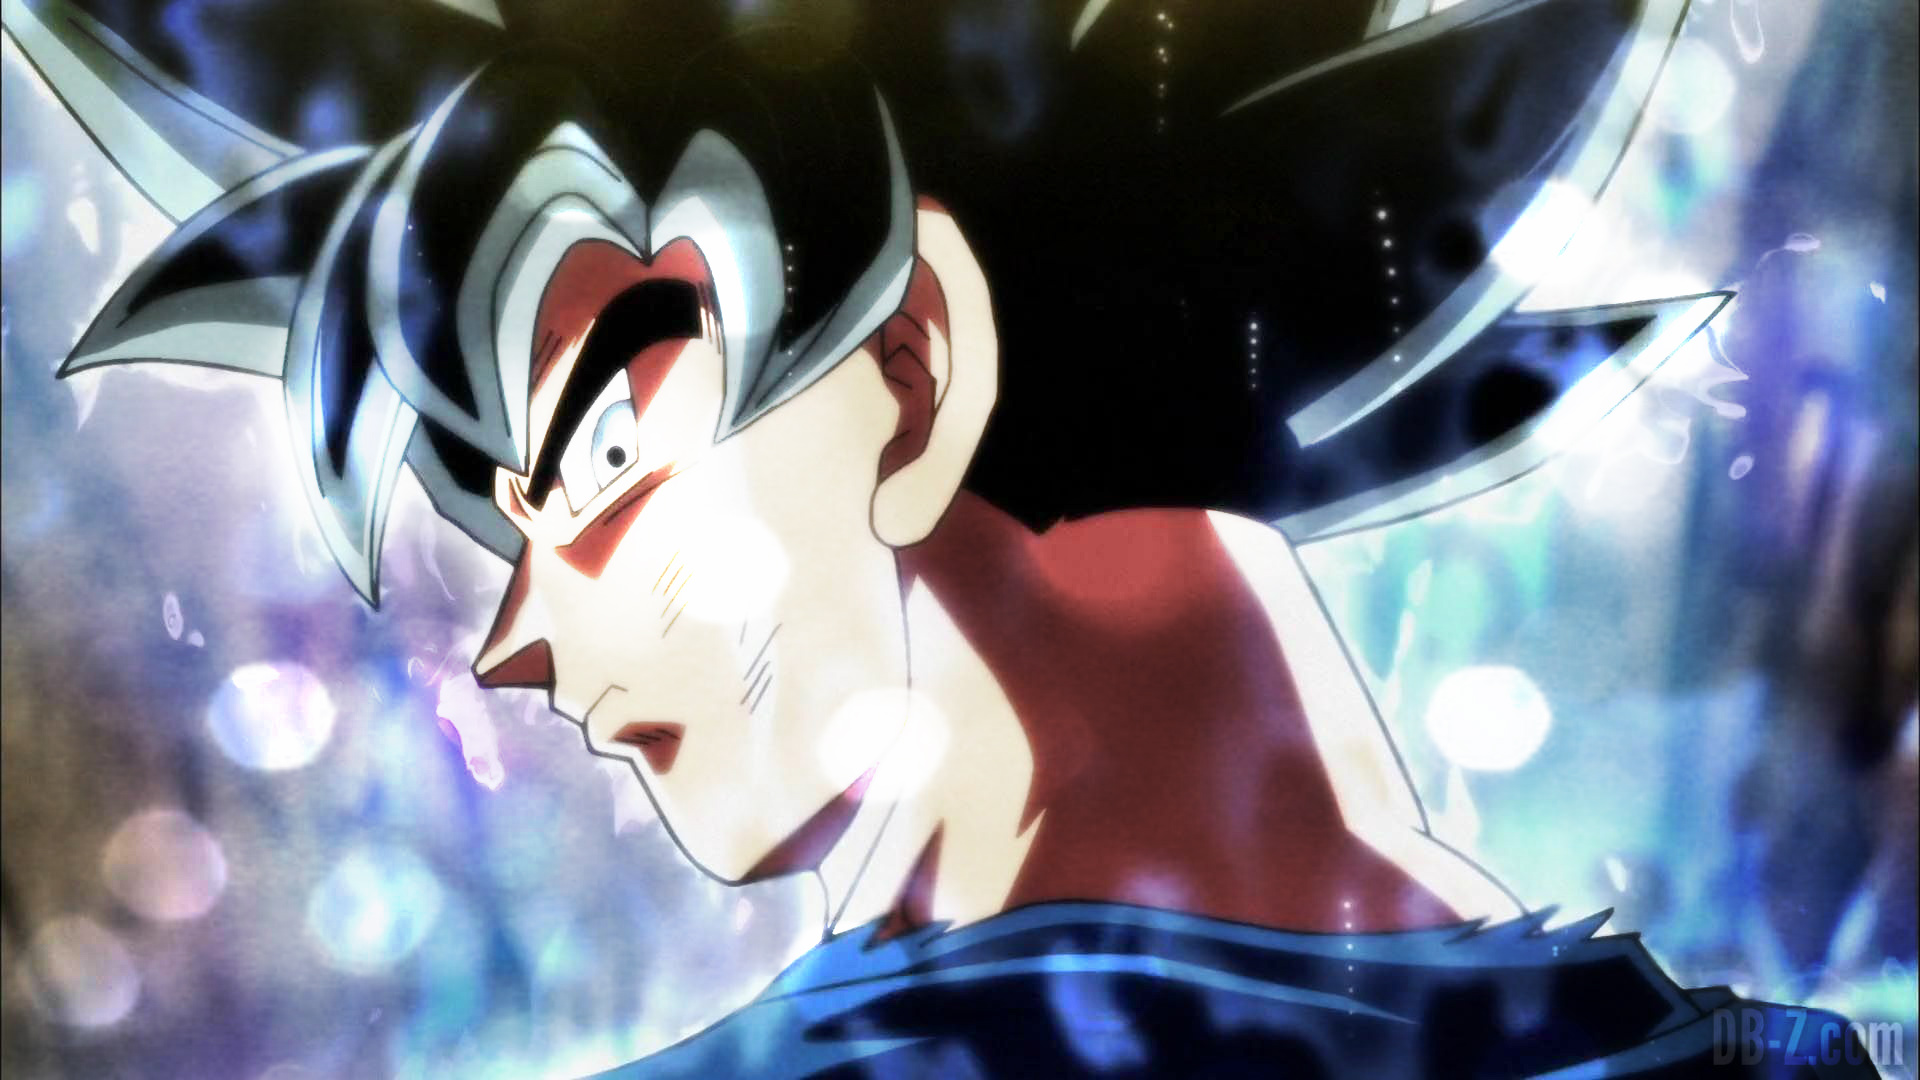 Goku Ultra Instinct Wallpaper 1080p Posted By Zoey Sellers